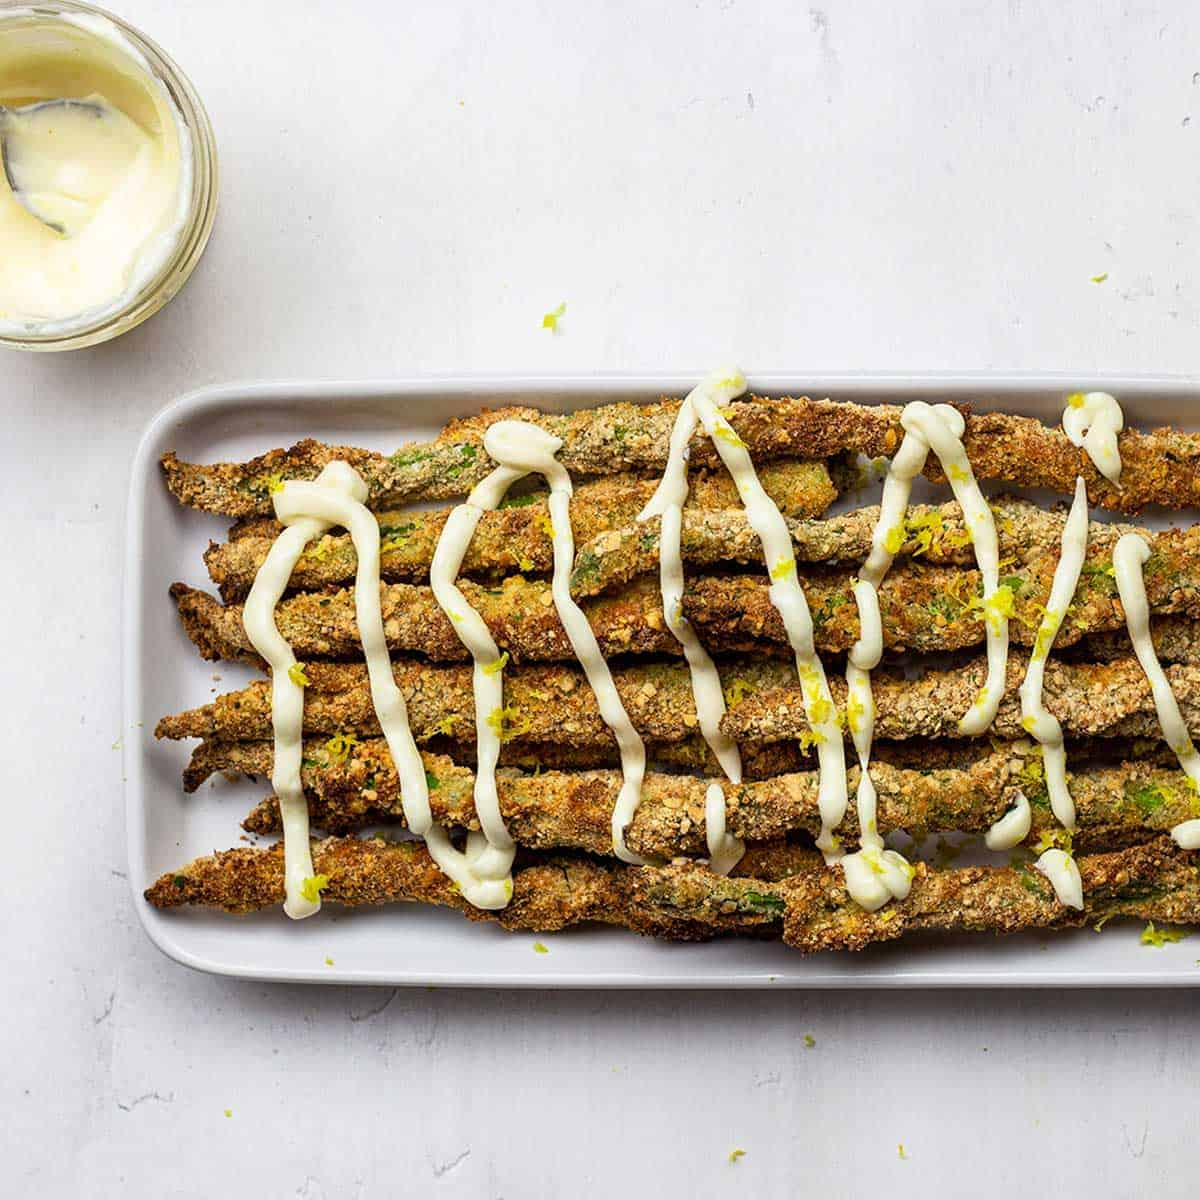 Air fryer asparagus with lemon aioli drizzle